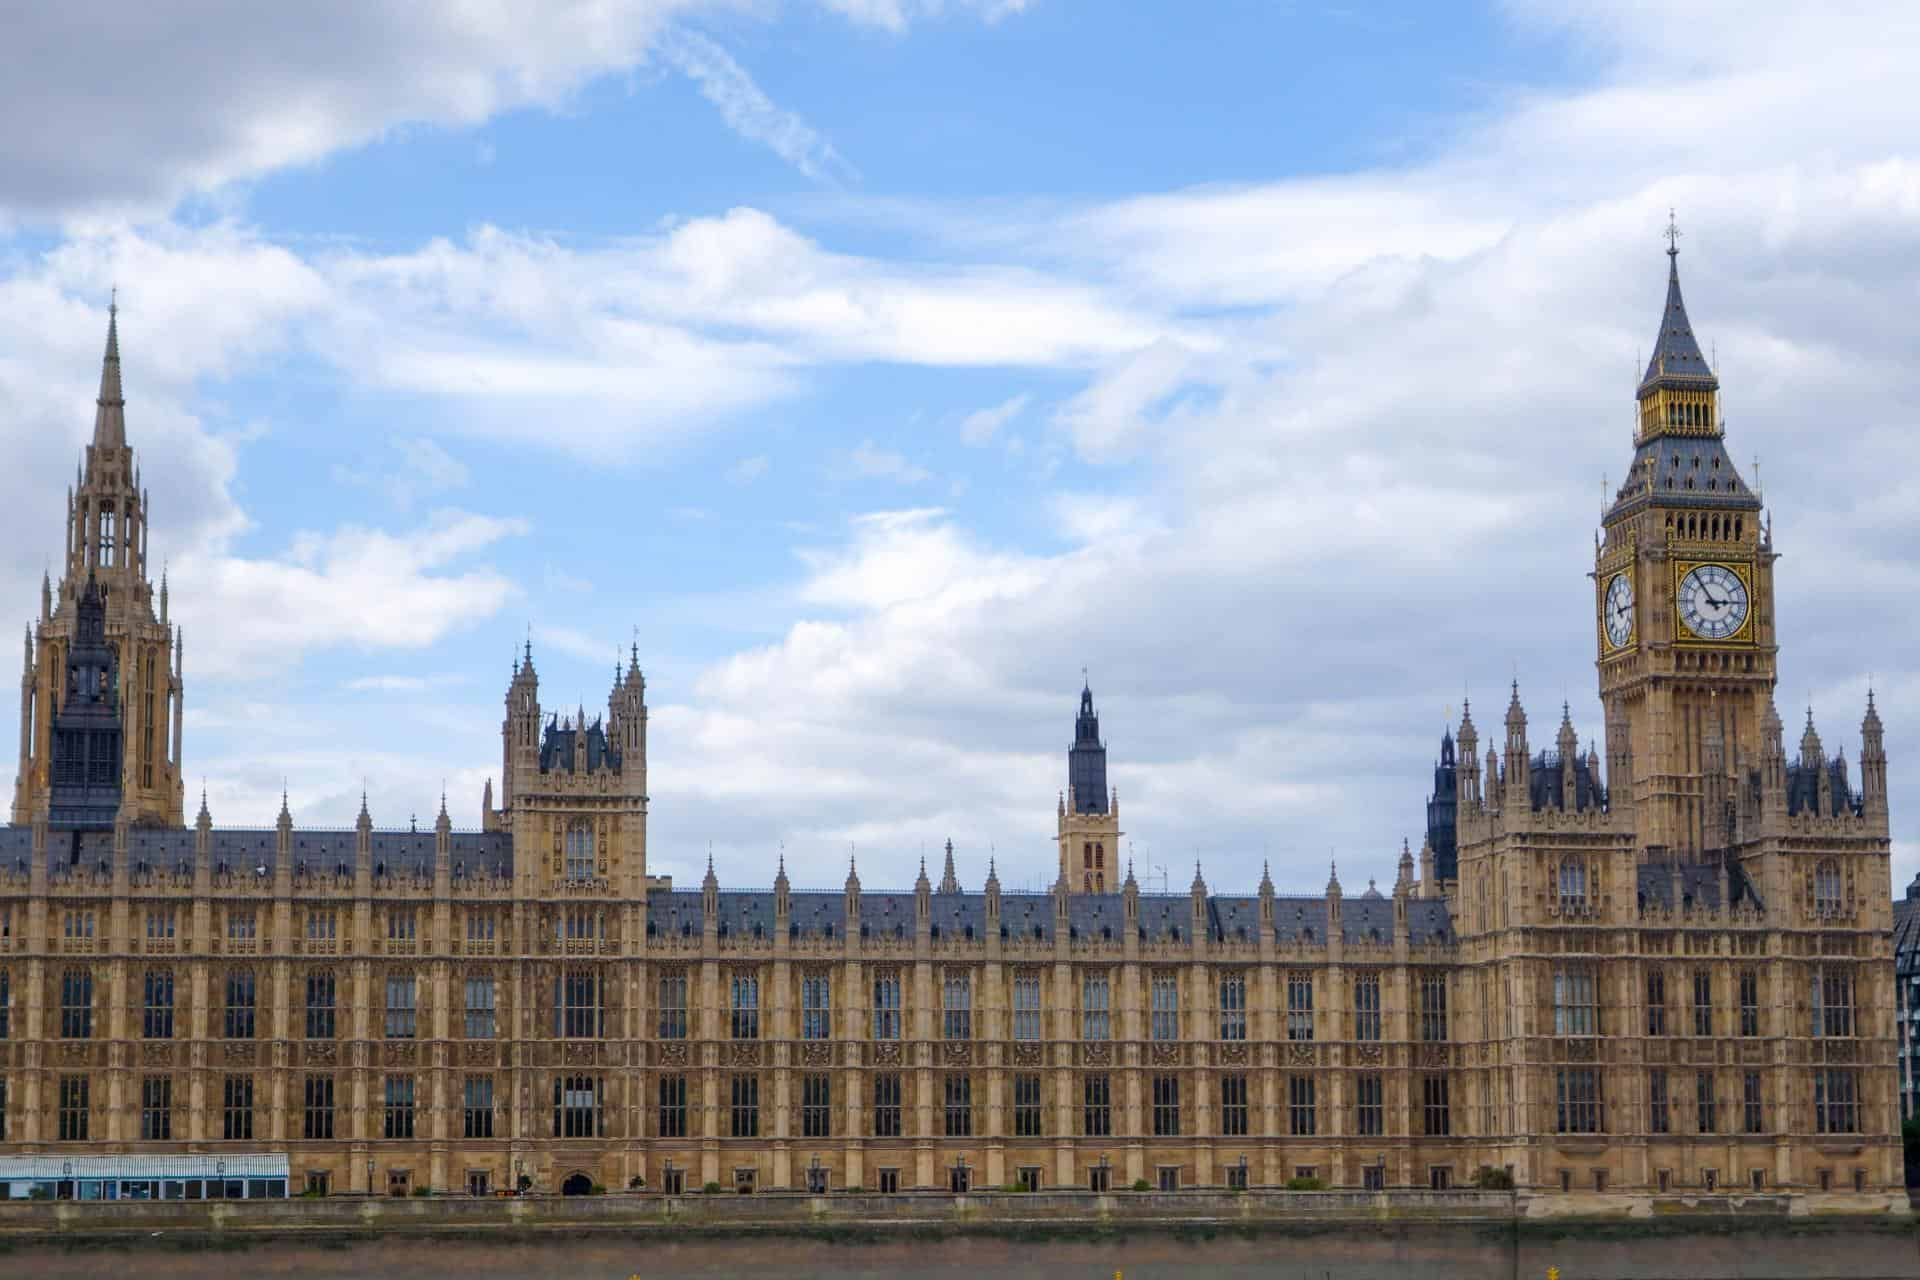 London loves: Houses of Parliament afternoon tea - review